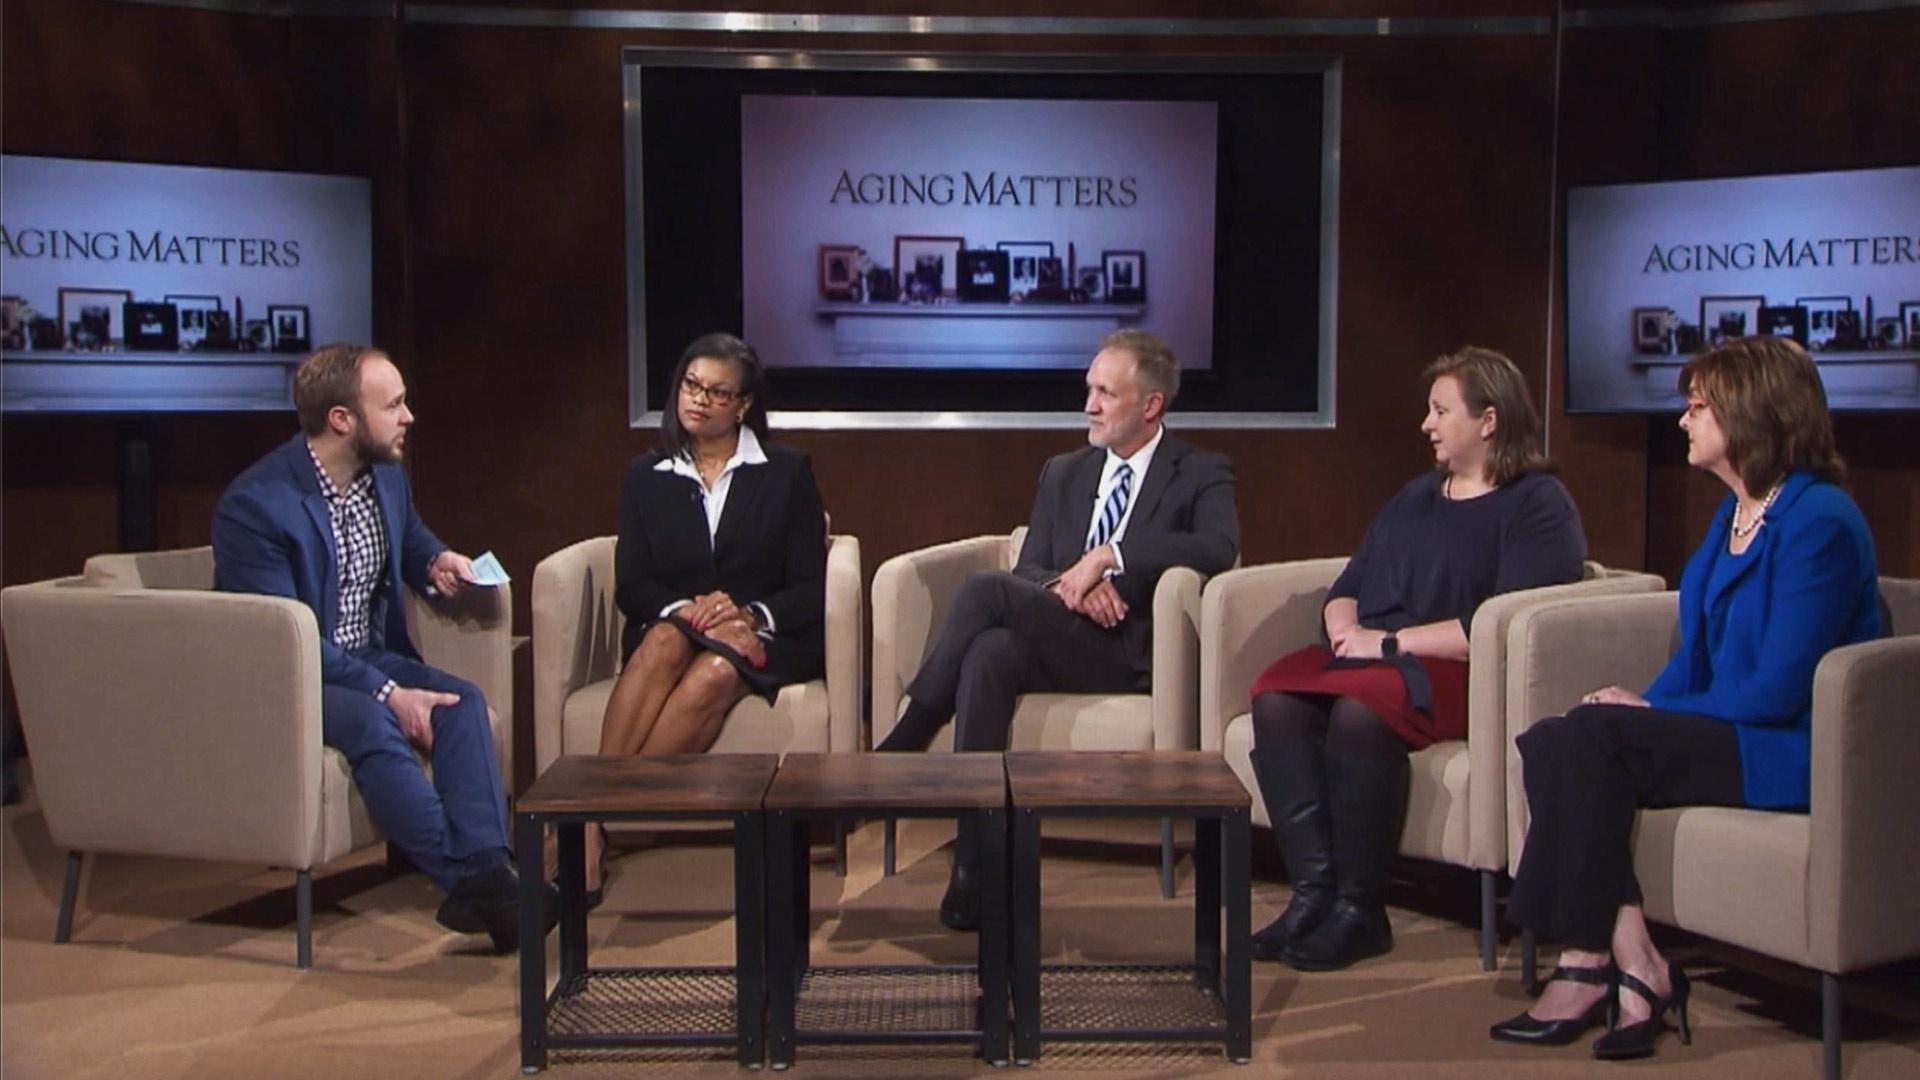 Legal Help Panel Discussion | Aging Matters | NPT